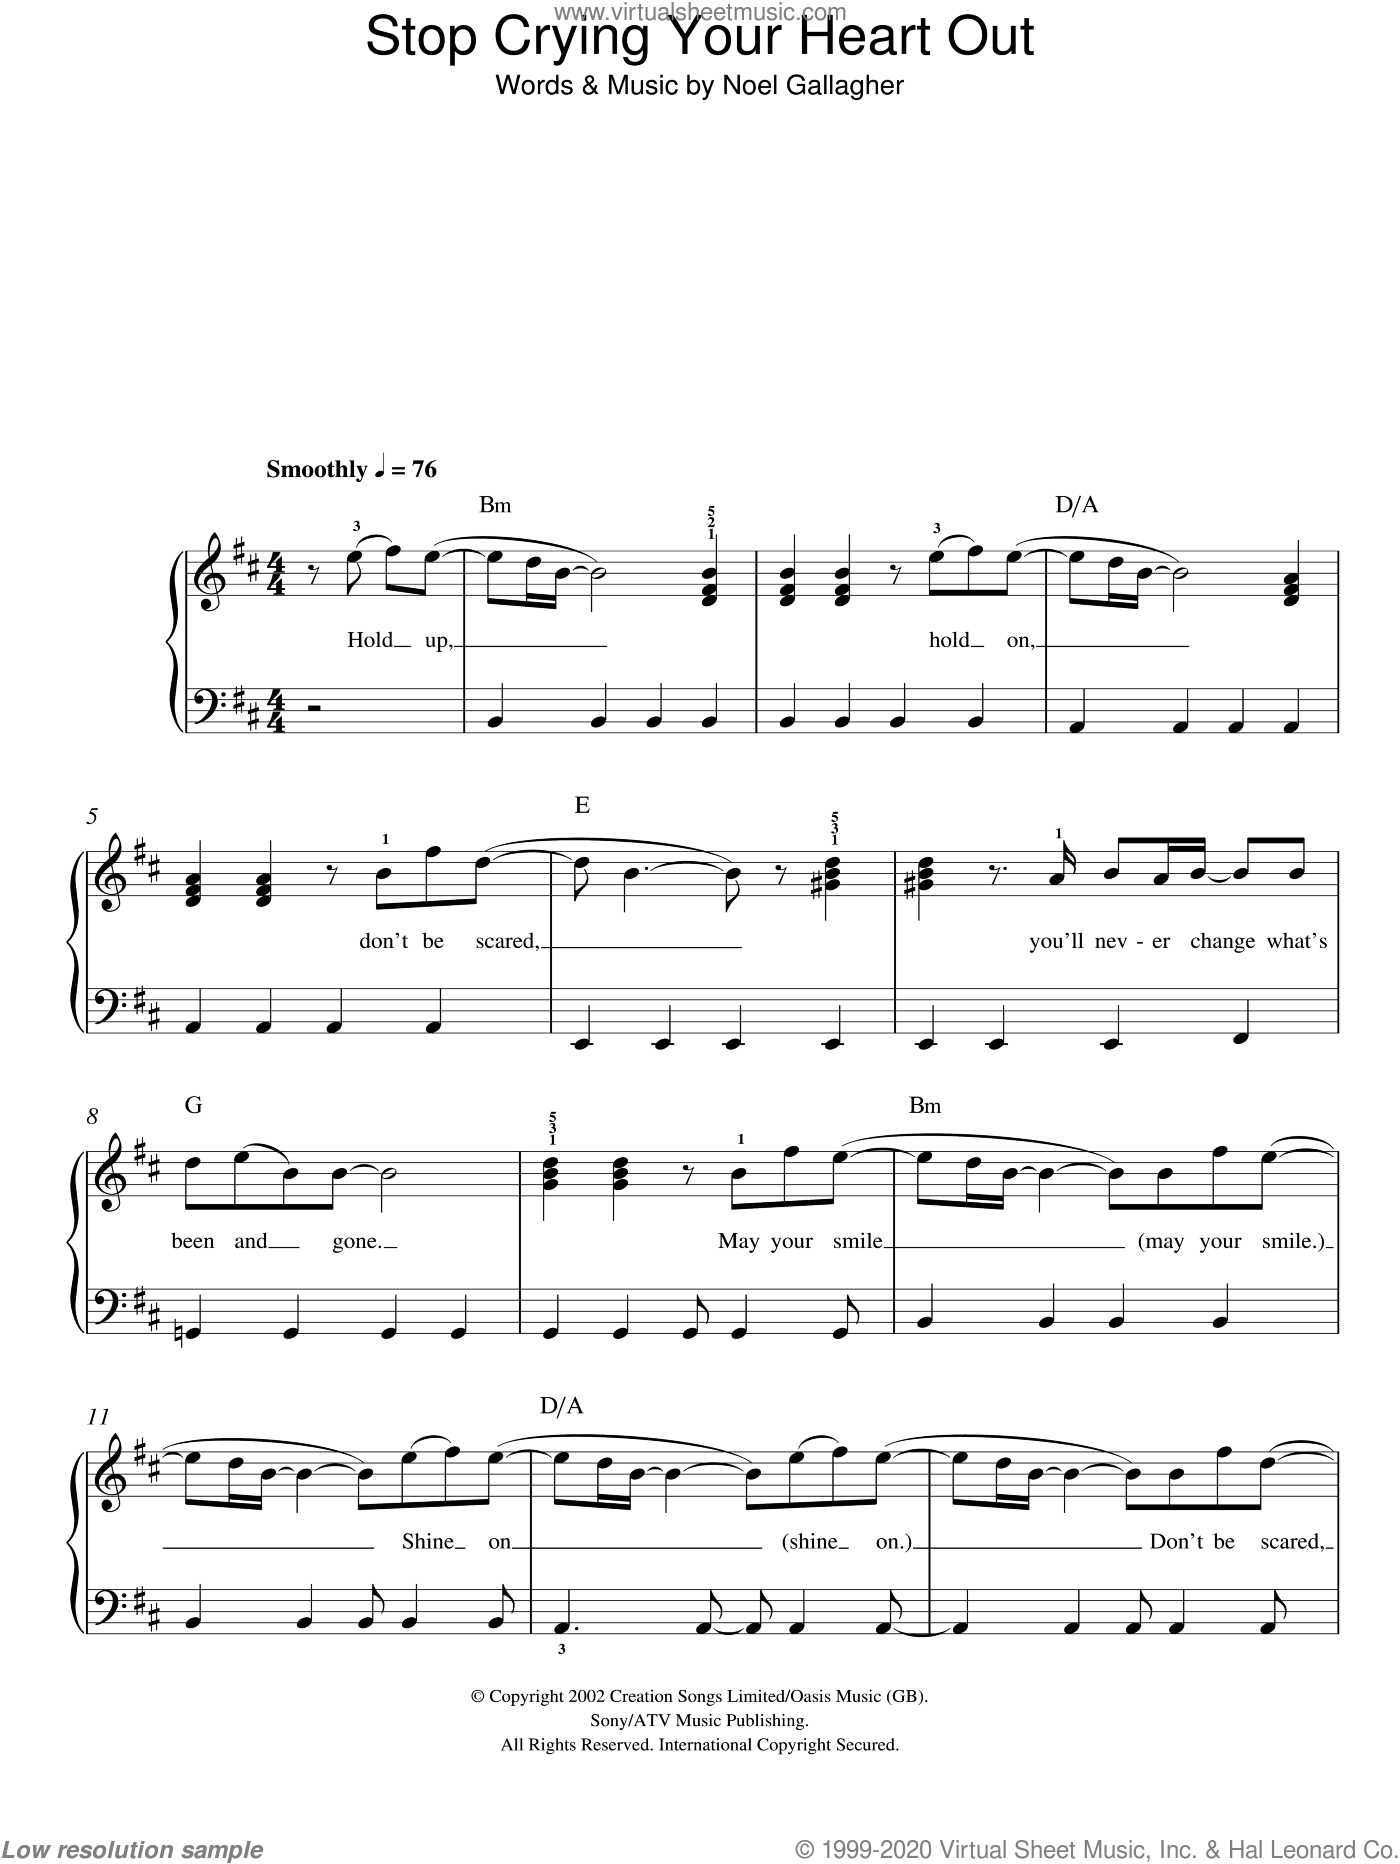 Stop Crying Your Heart Out sheet music for piano solo by Noel Gallagher and Oasis